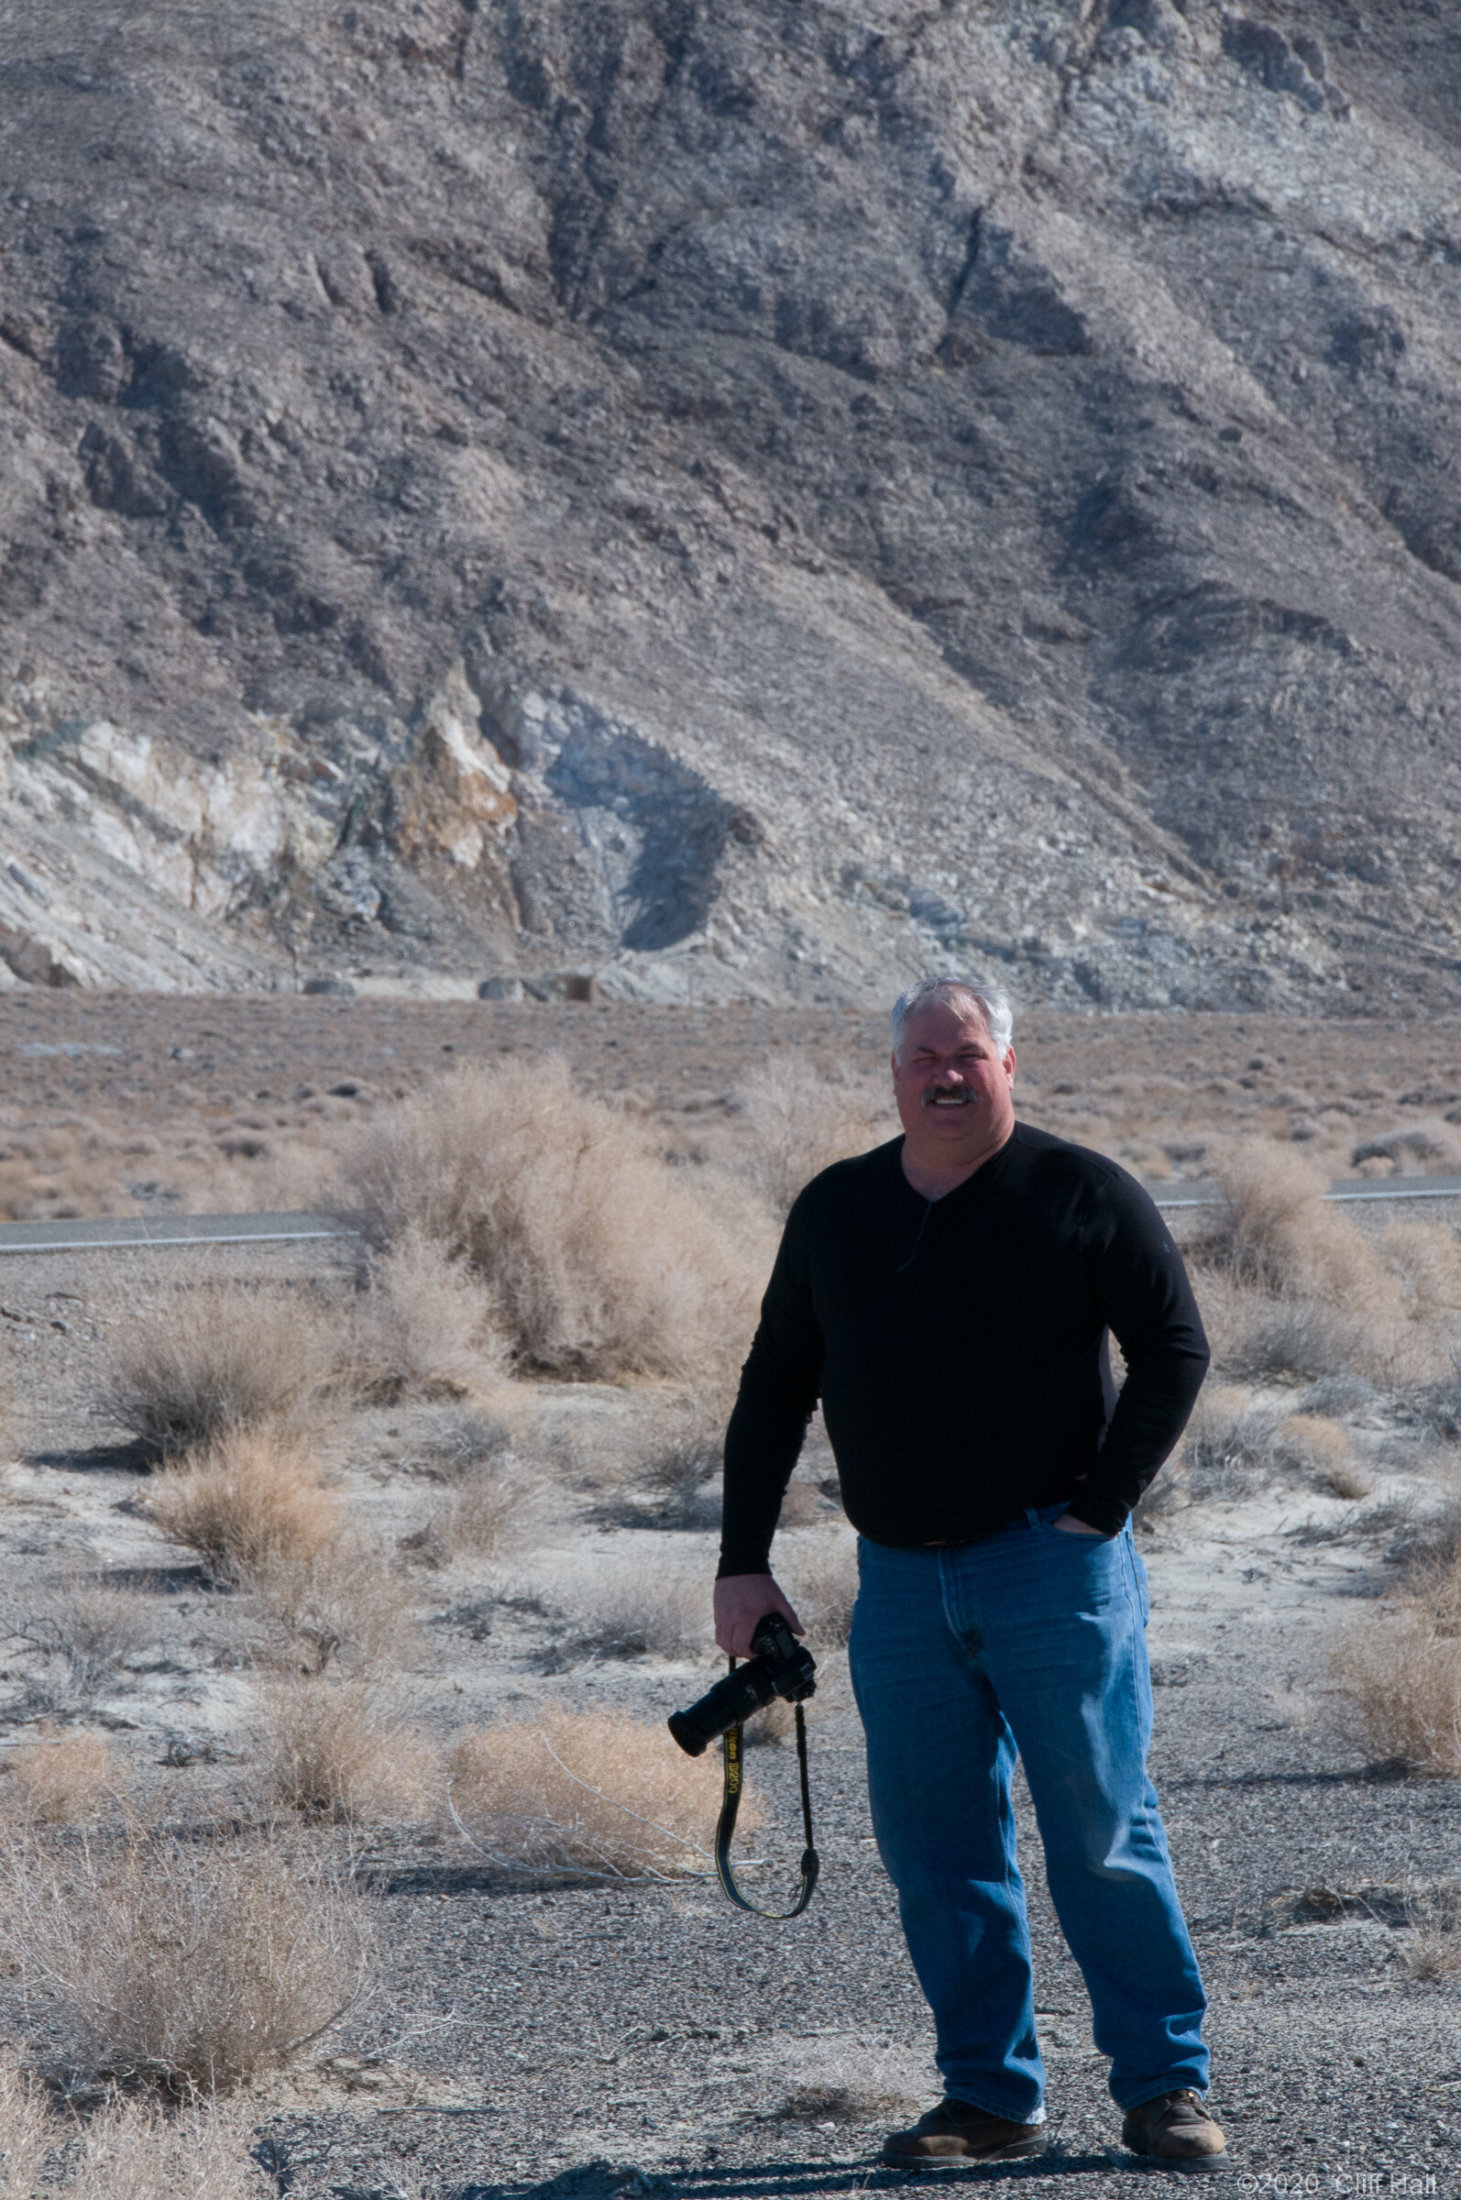 Roger on road to Death Valley